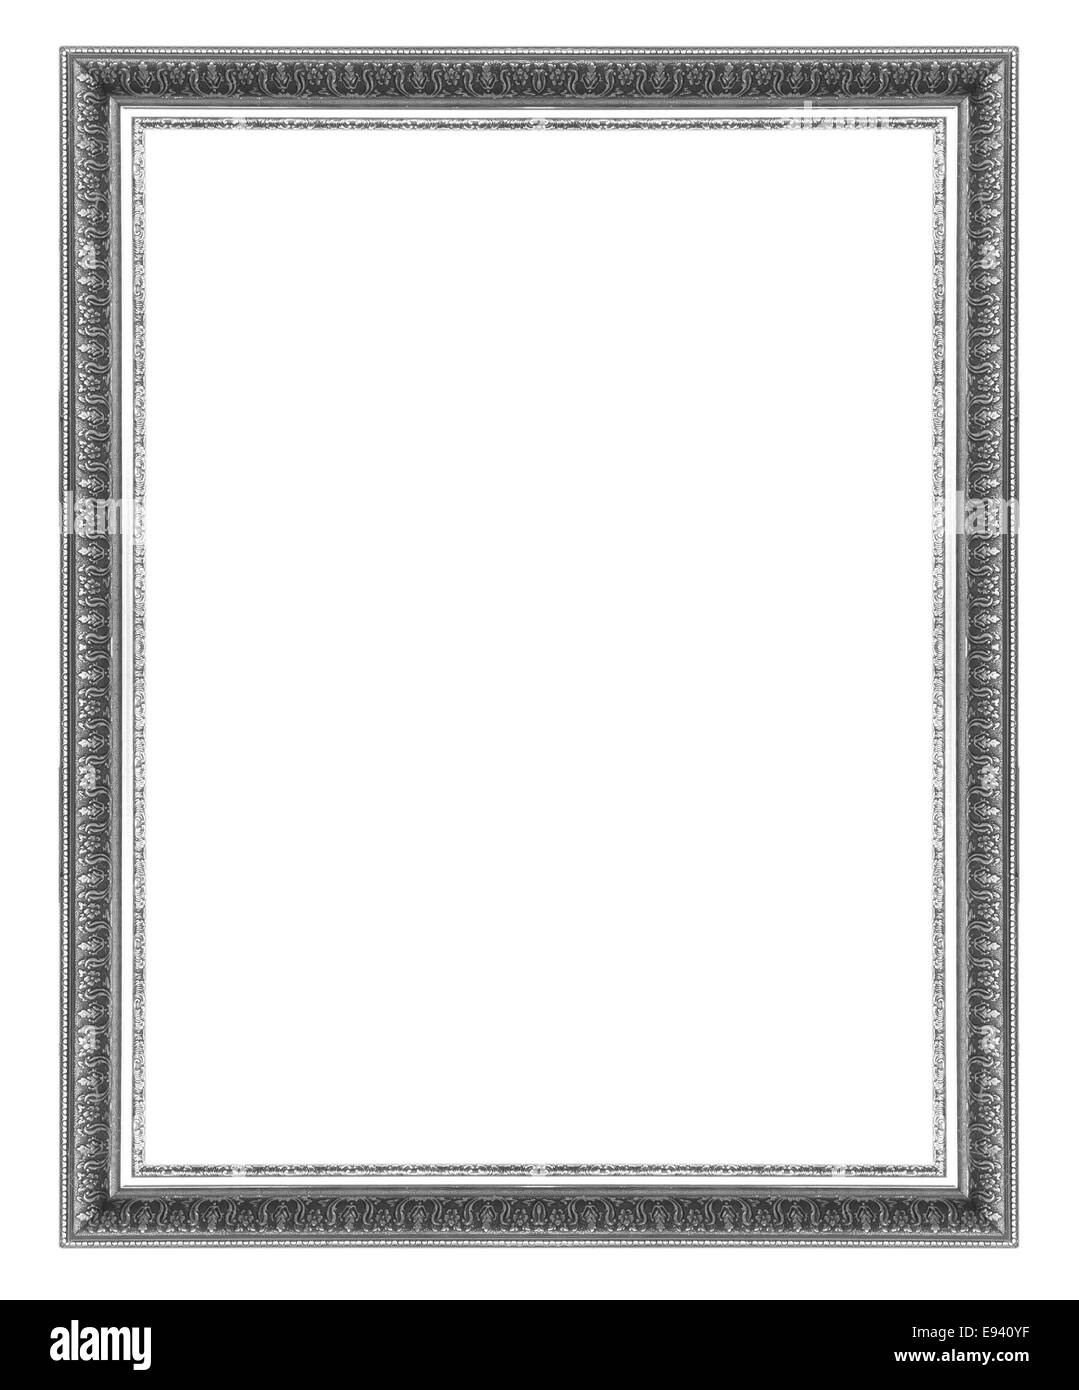 Silver Frames Stock Photos & Silver Frames Stock Images - Alamy